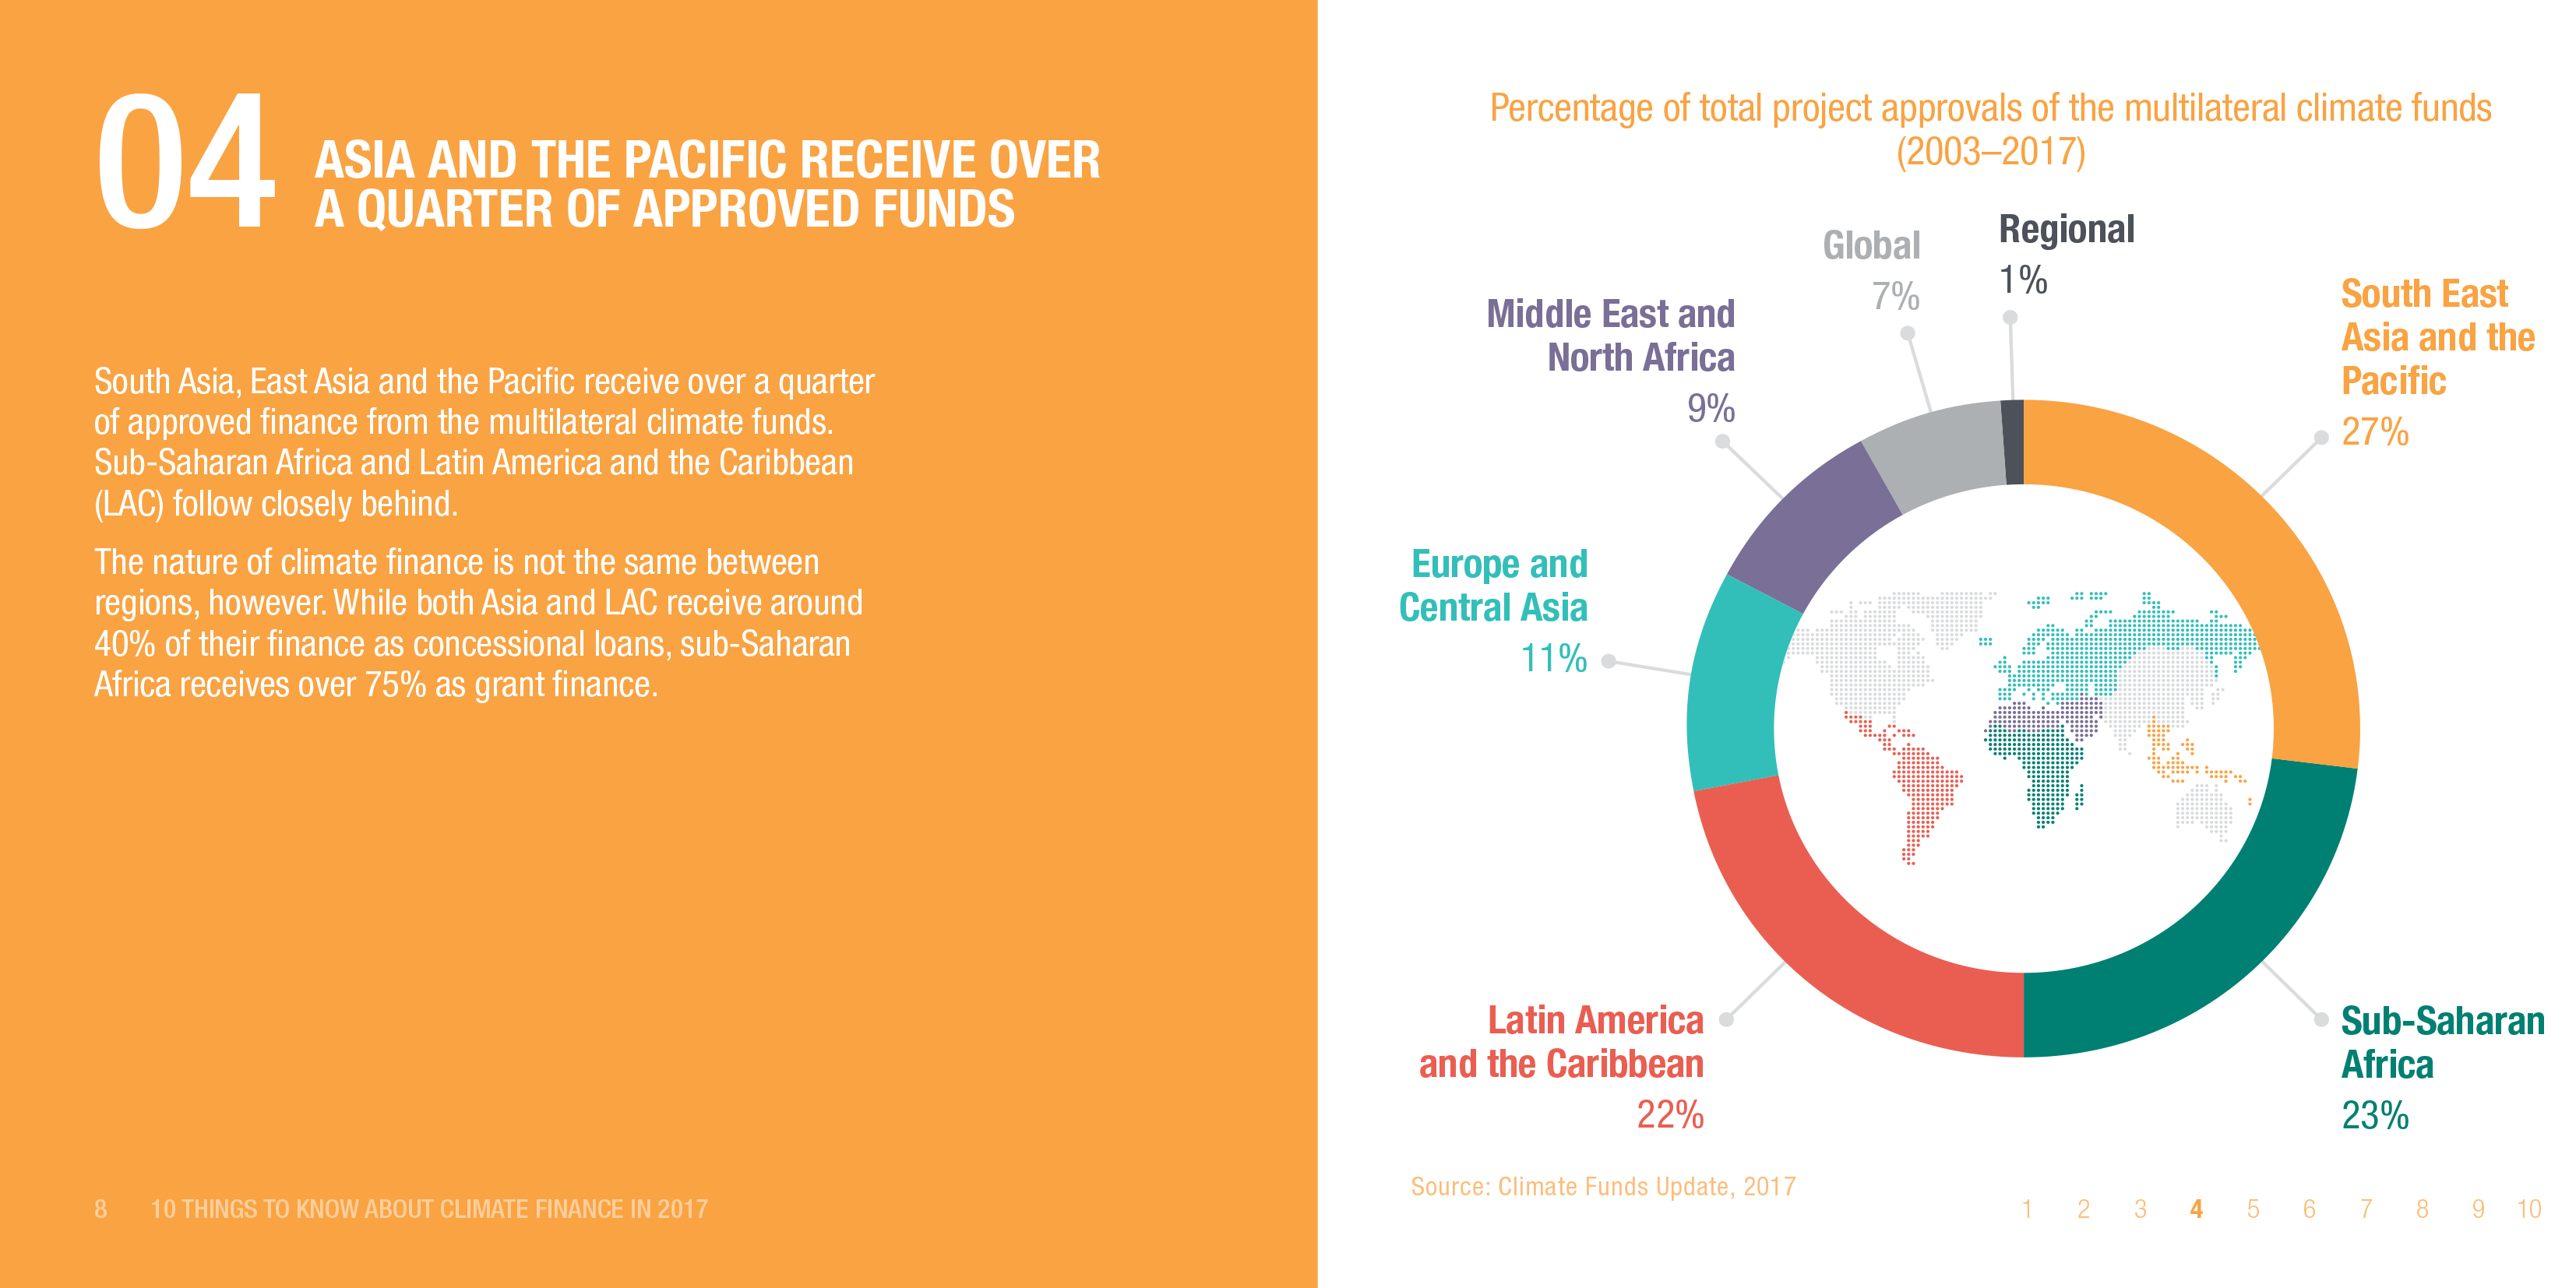 Infographic: Asia and the Pacific receive over a quarter of approved funds